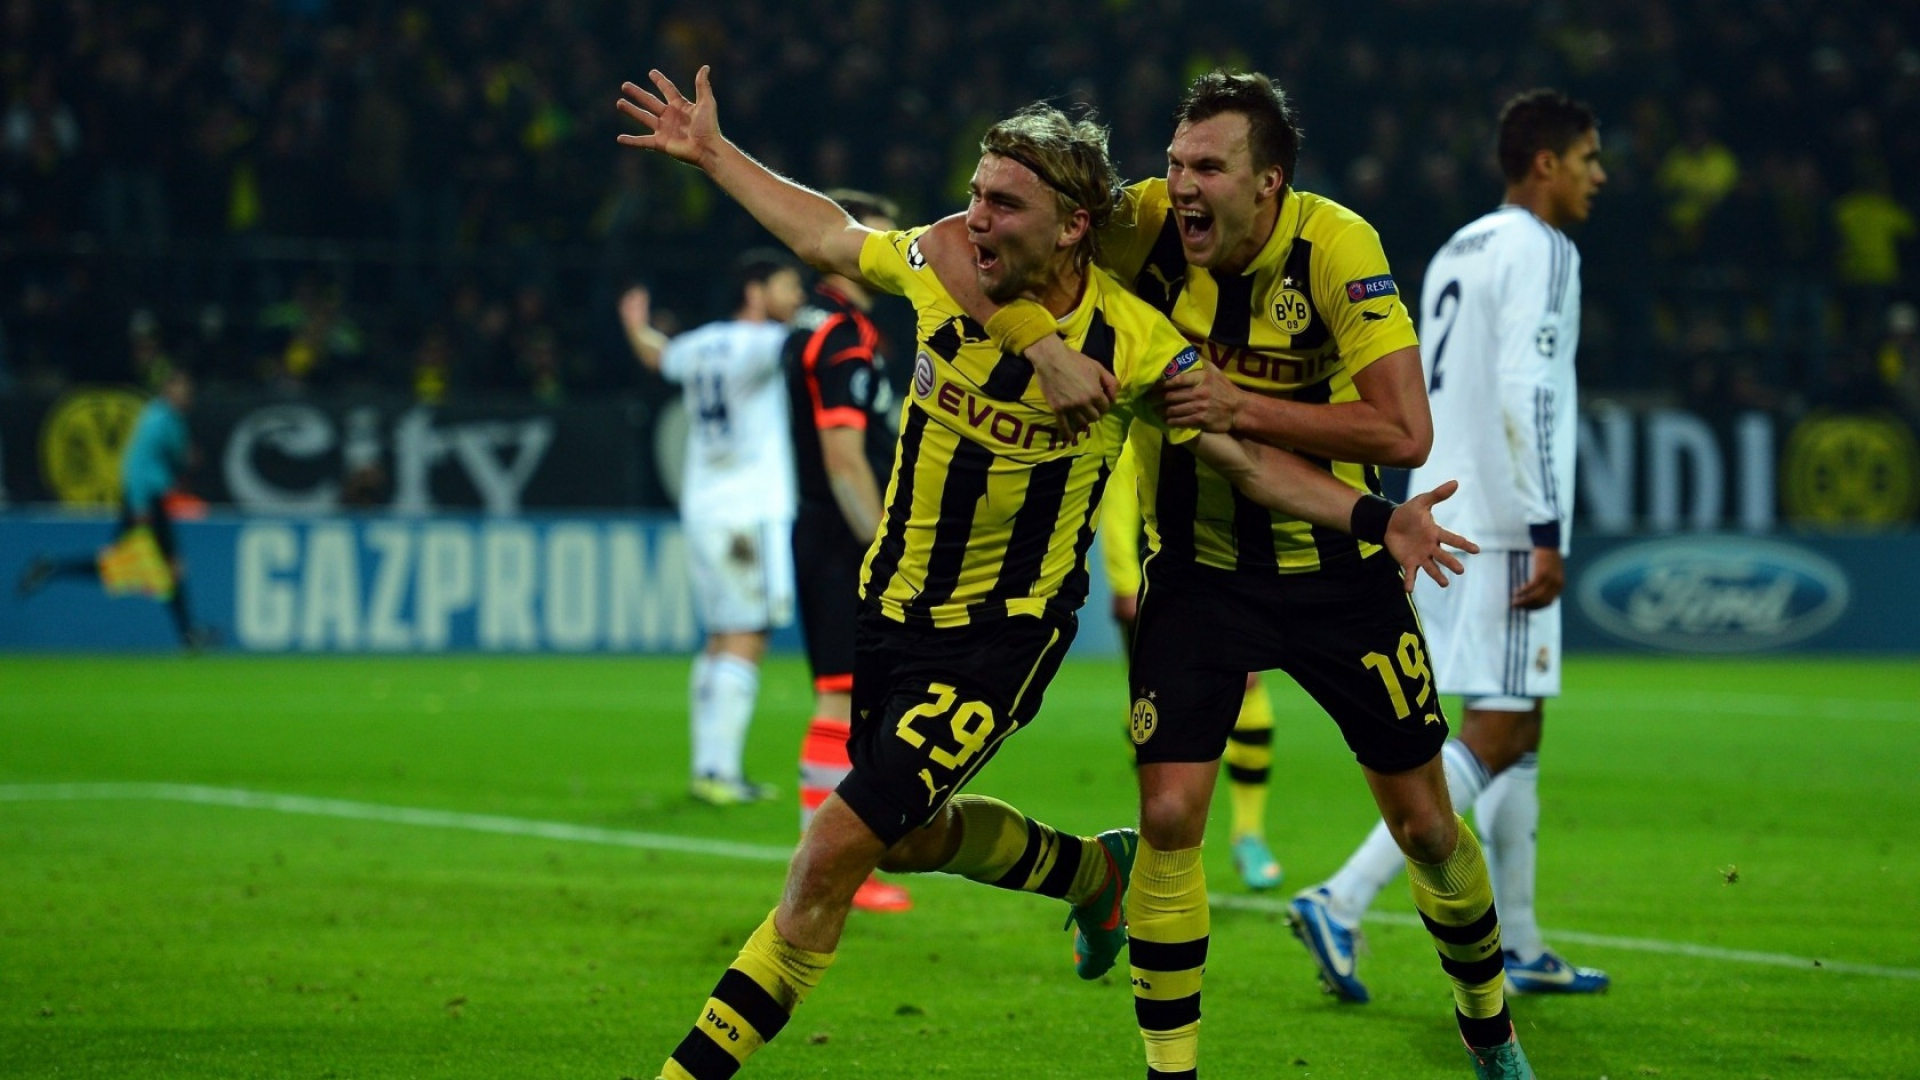 Download wallpaper 1920x1080 marcel schmelzer schmelzer kevin pictures and videos and learn all about marcel schmelzer schmelzer kevin grosskreutz from wallpapers4u your wallpaper news source voltagebd Choice Image